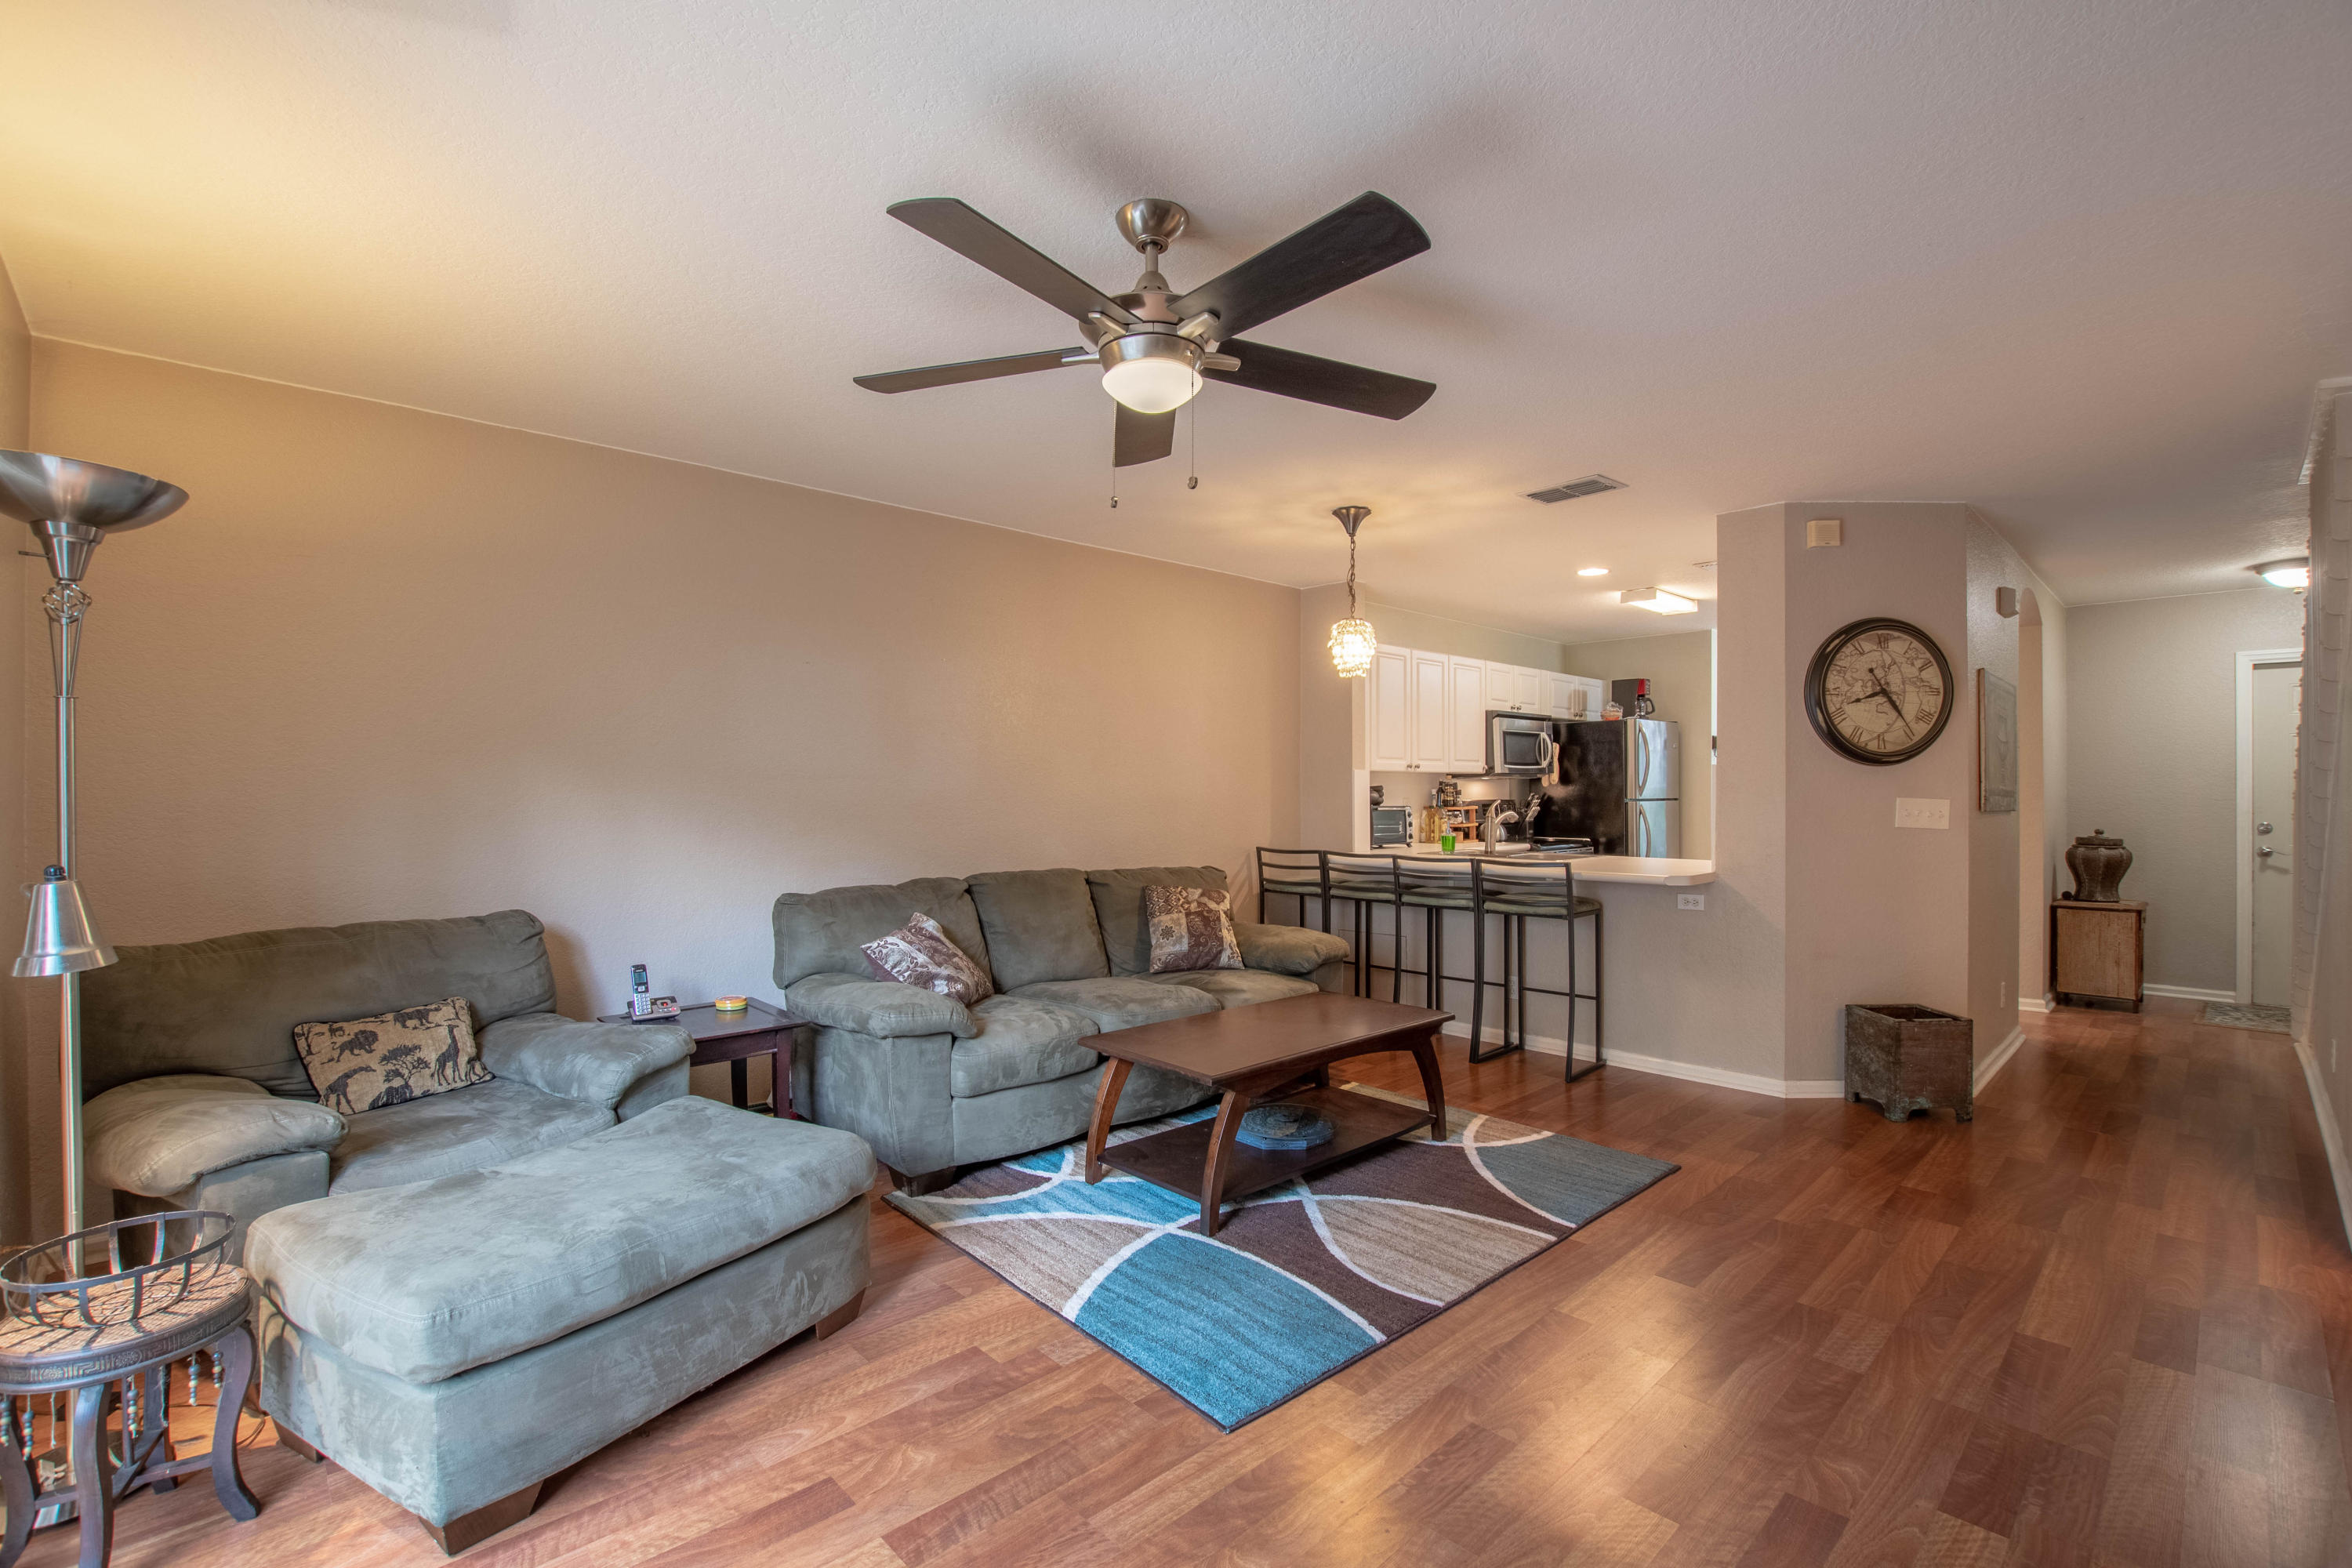 852 Summit Lake Drive, West Palm Beach, Florida 33406, 2 Bedrooms Bedrooms, ,2 BathroomsBathrooms,Residential,For Sale,Summit Lake,RX-10594235